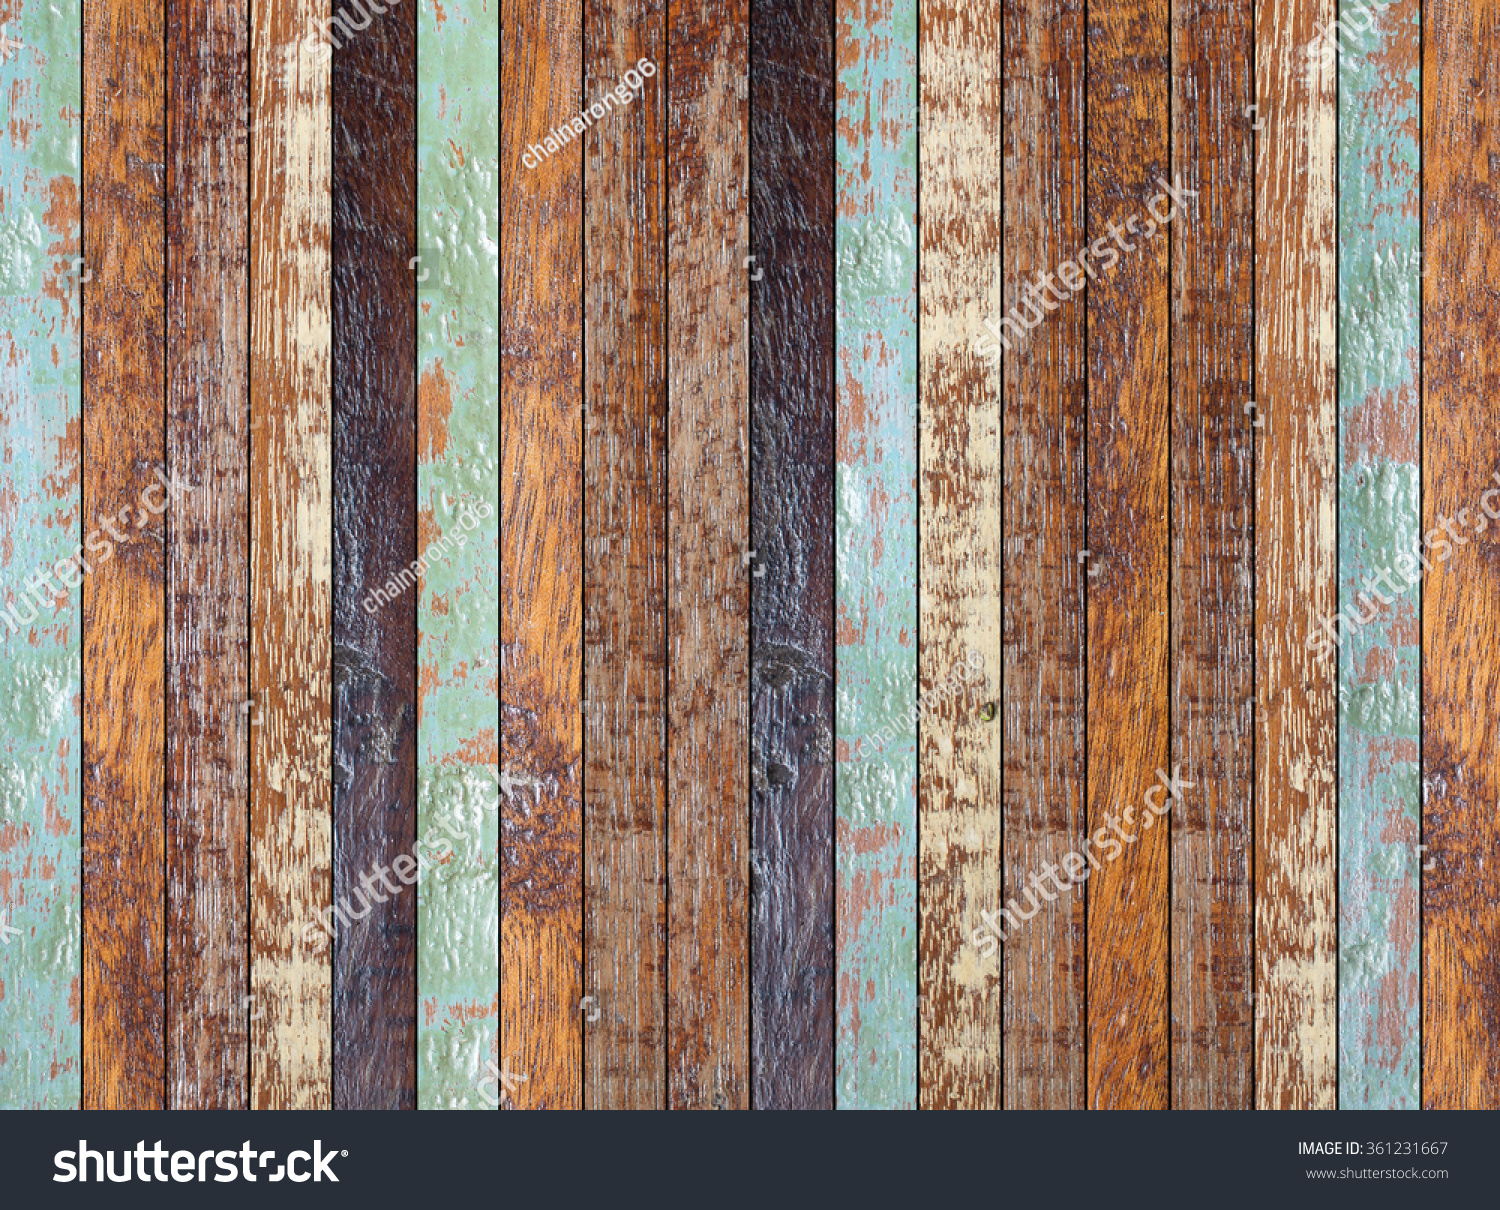 Vintage Aged Wooden Background Texture Retro Wooden Panel